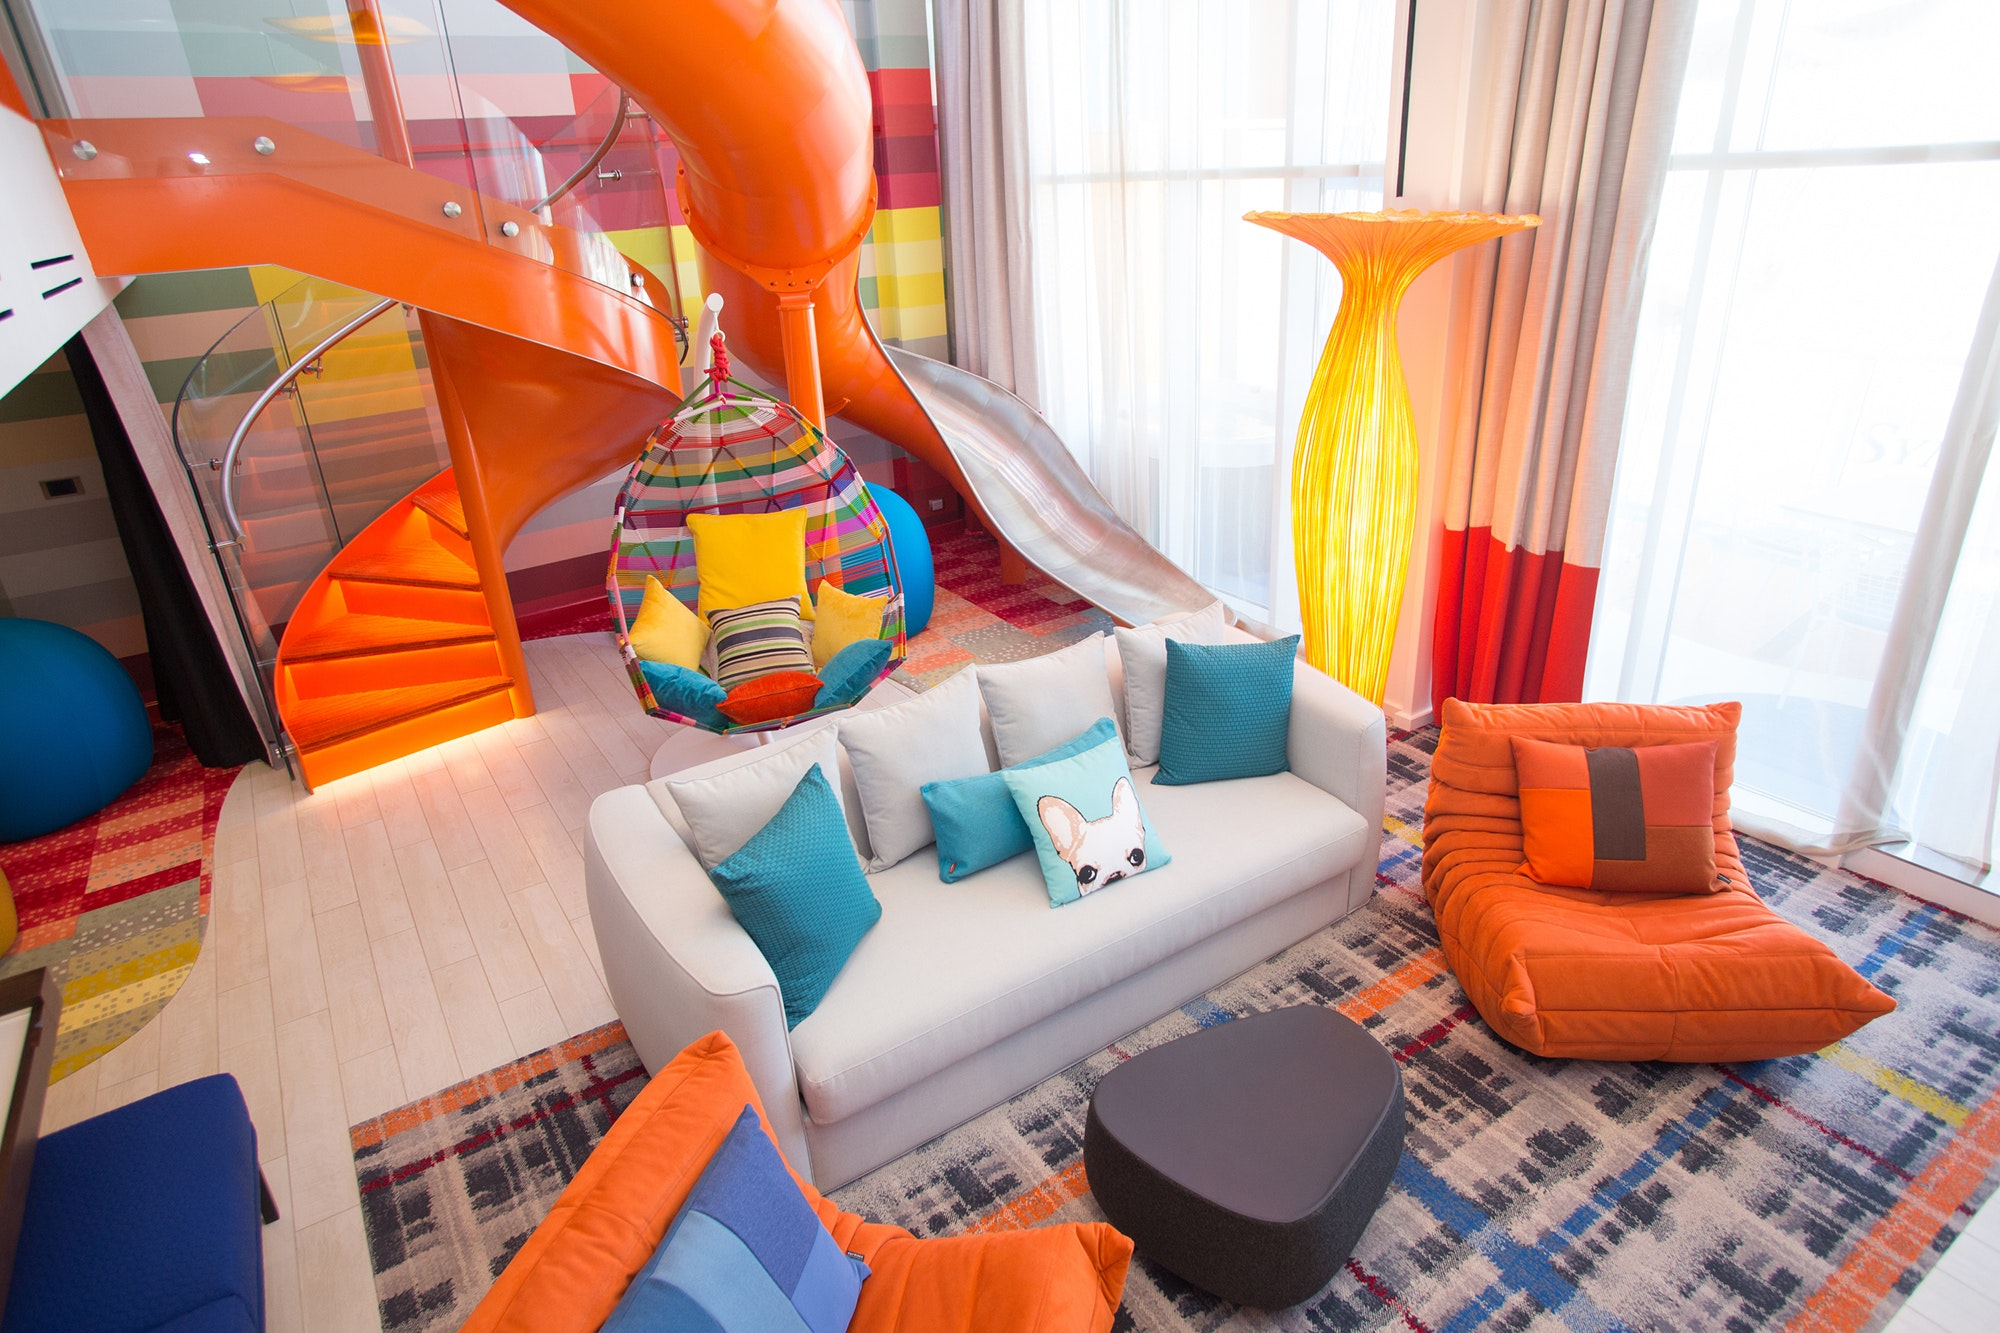 The two-floor Ultimate Family Suite features an indoor slide, an air hockey table, and a giant Lego wall.